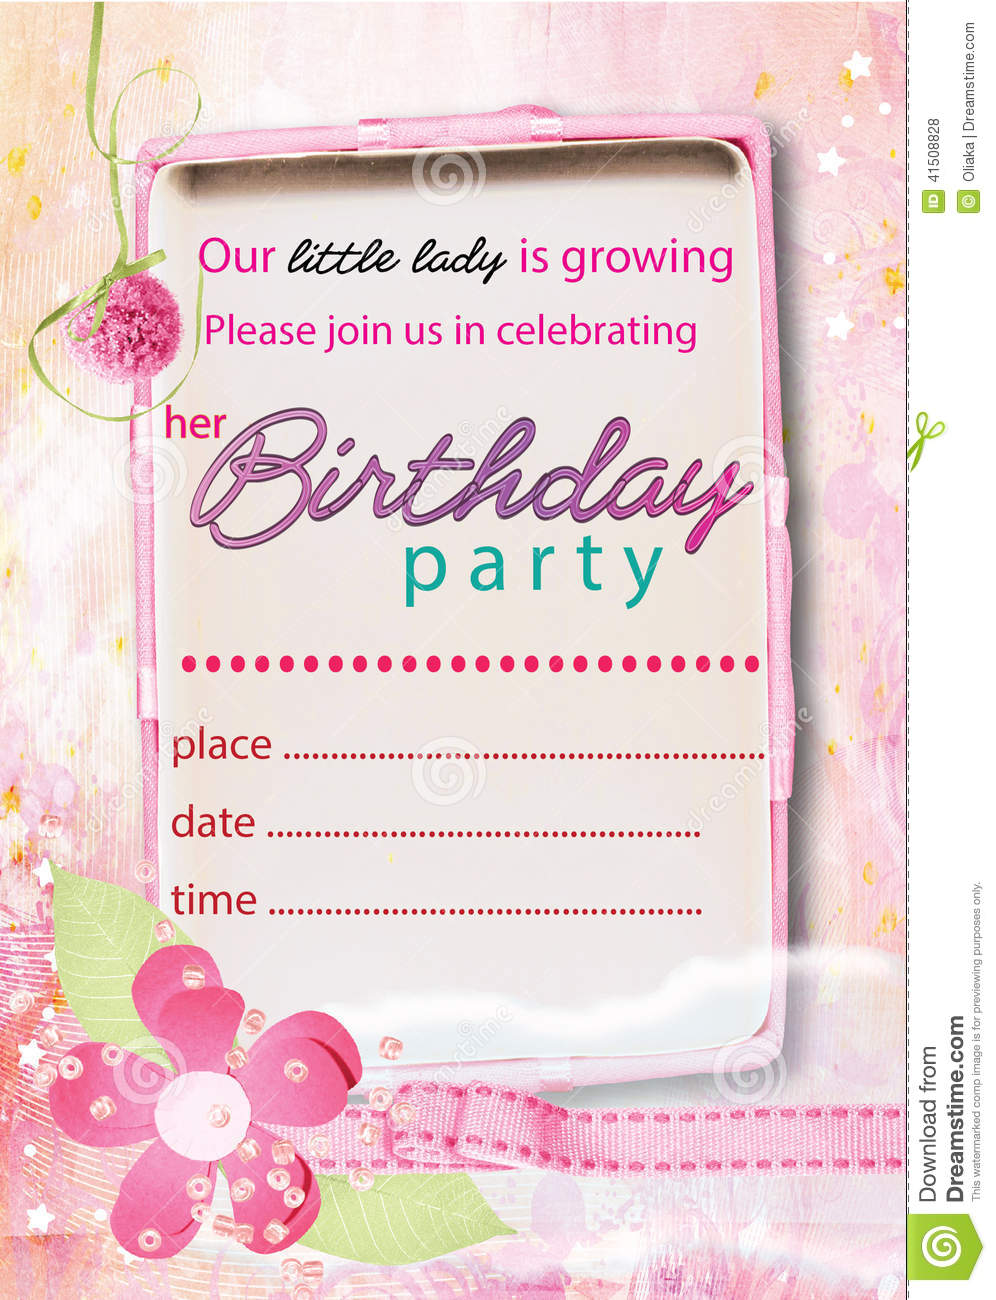 Free Birthday Invite Templates was awesome invitation example